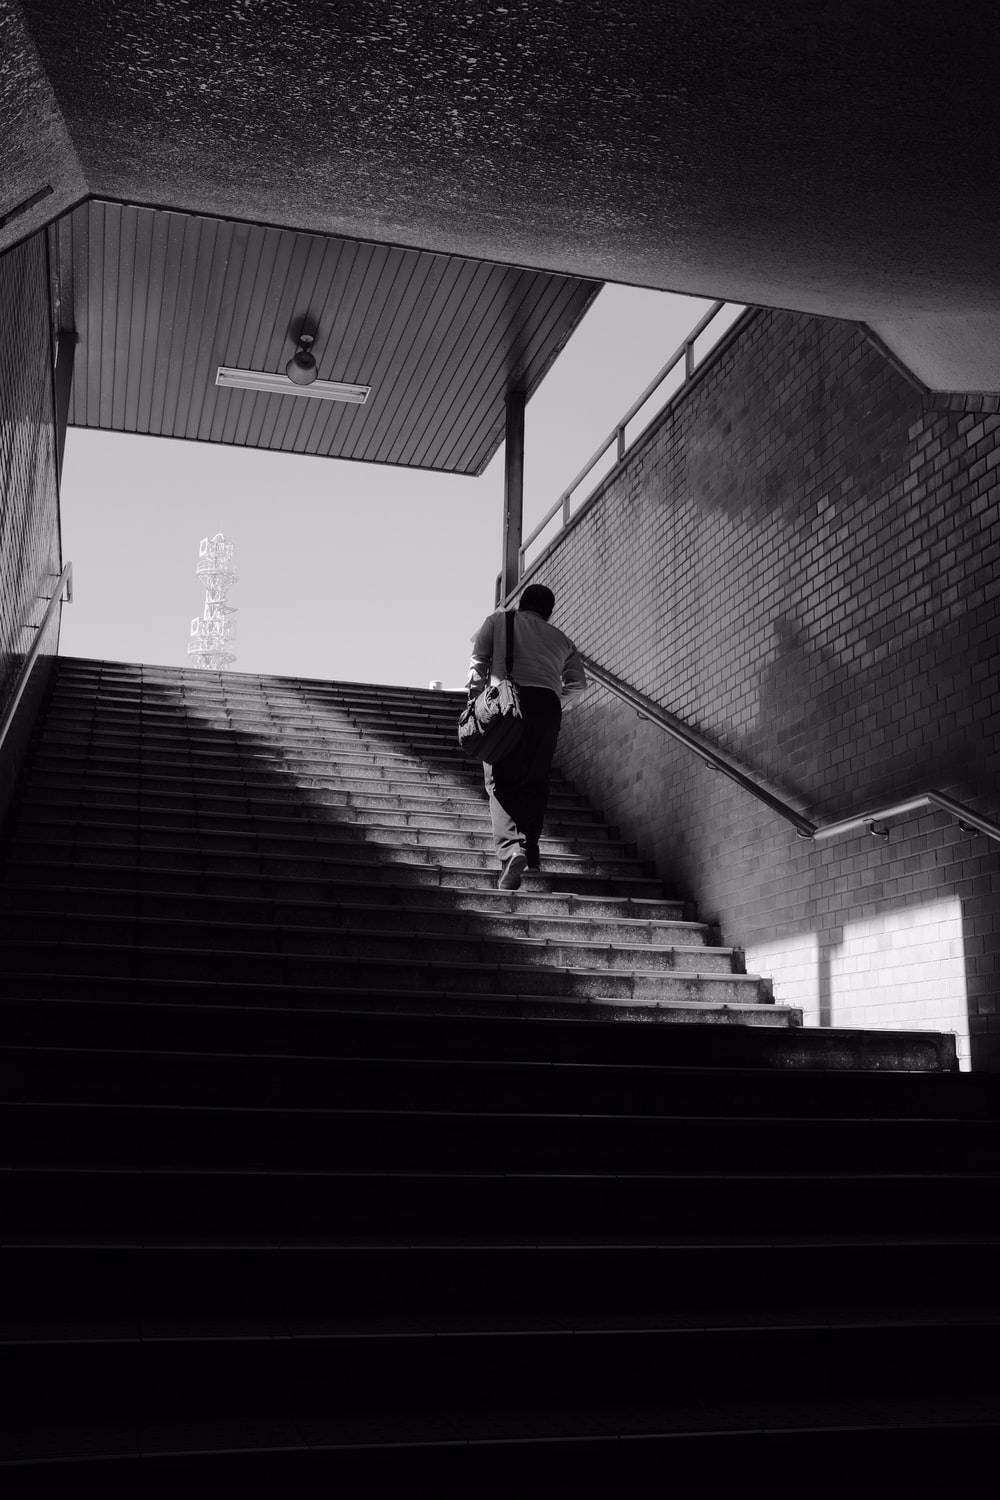 man in black jacket and pants walking on stairs